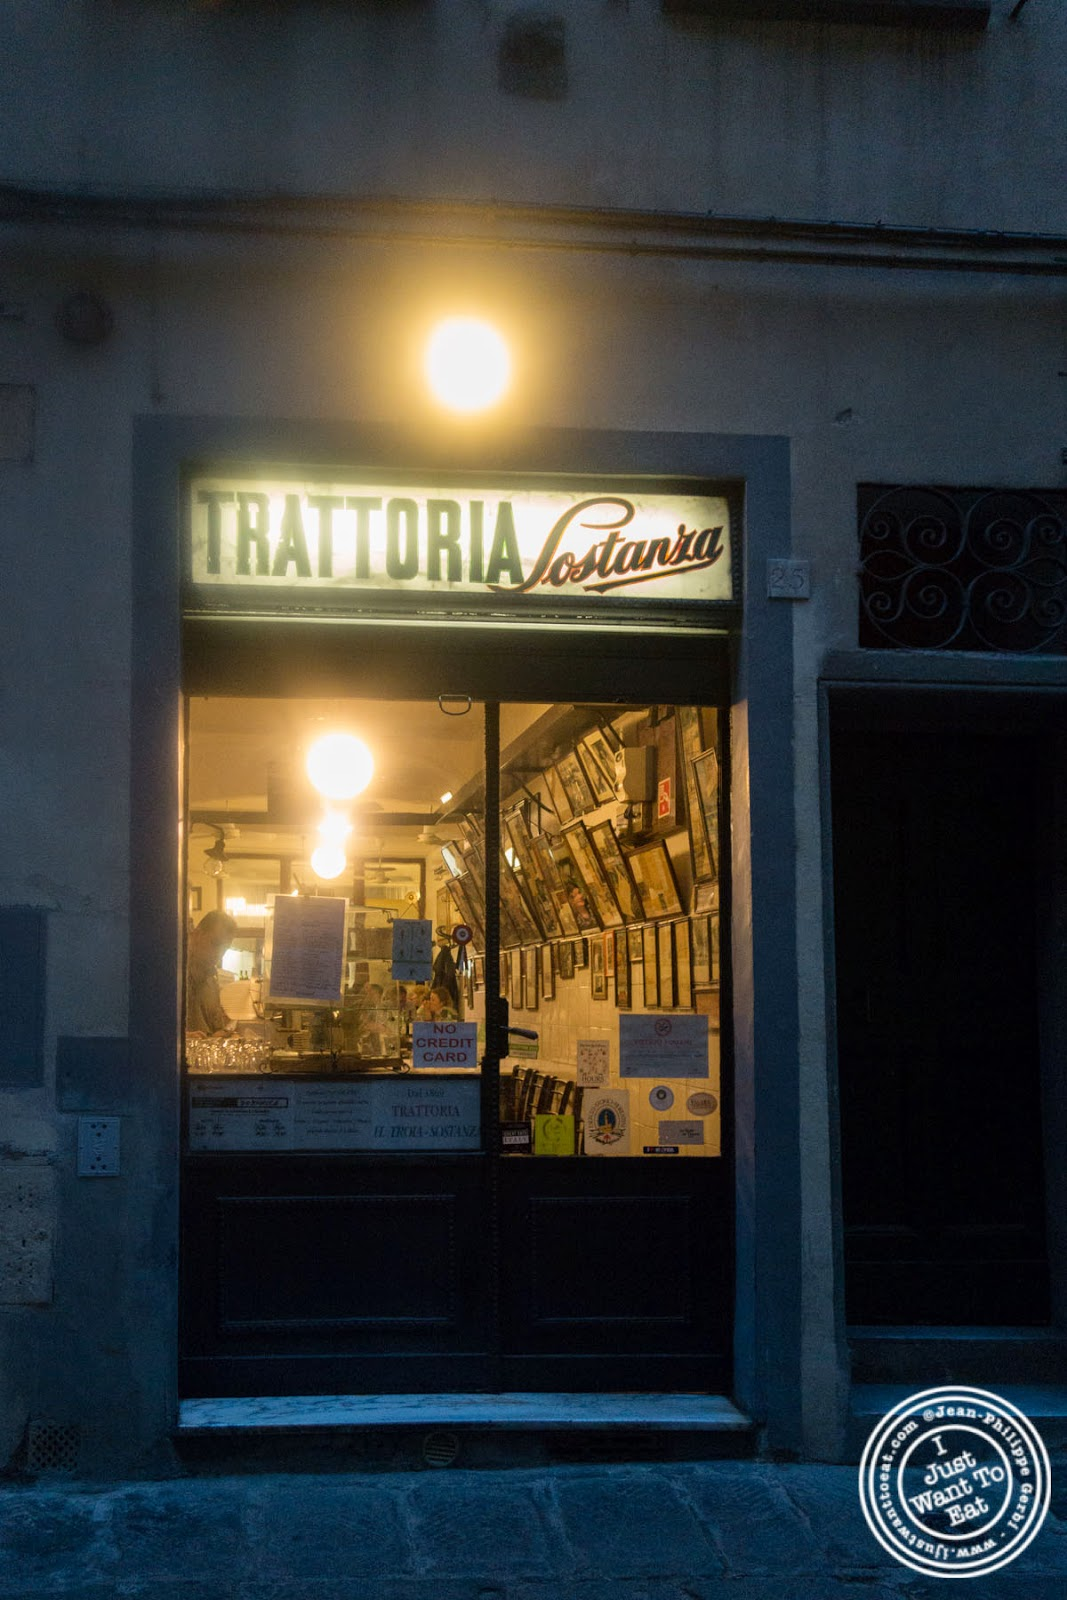 Trattoria Sostanza, communal dining in Florence, Italy